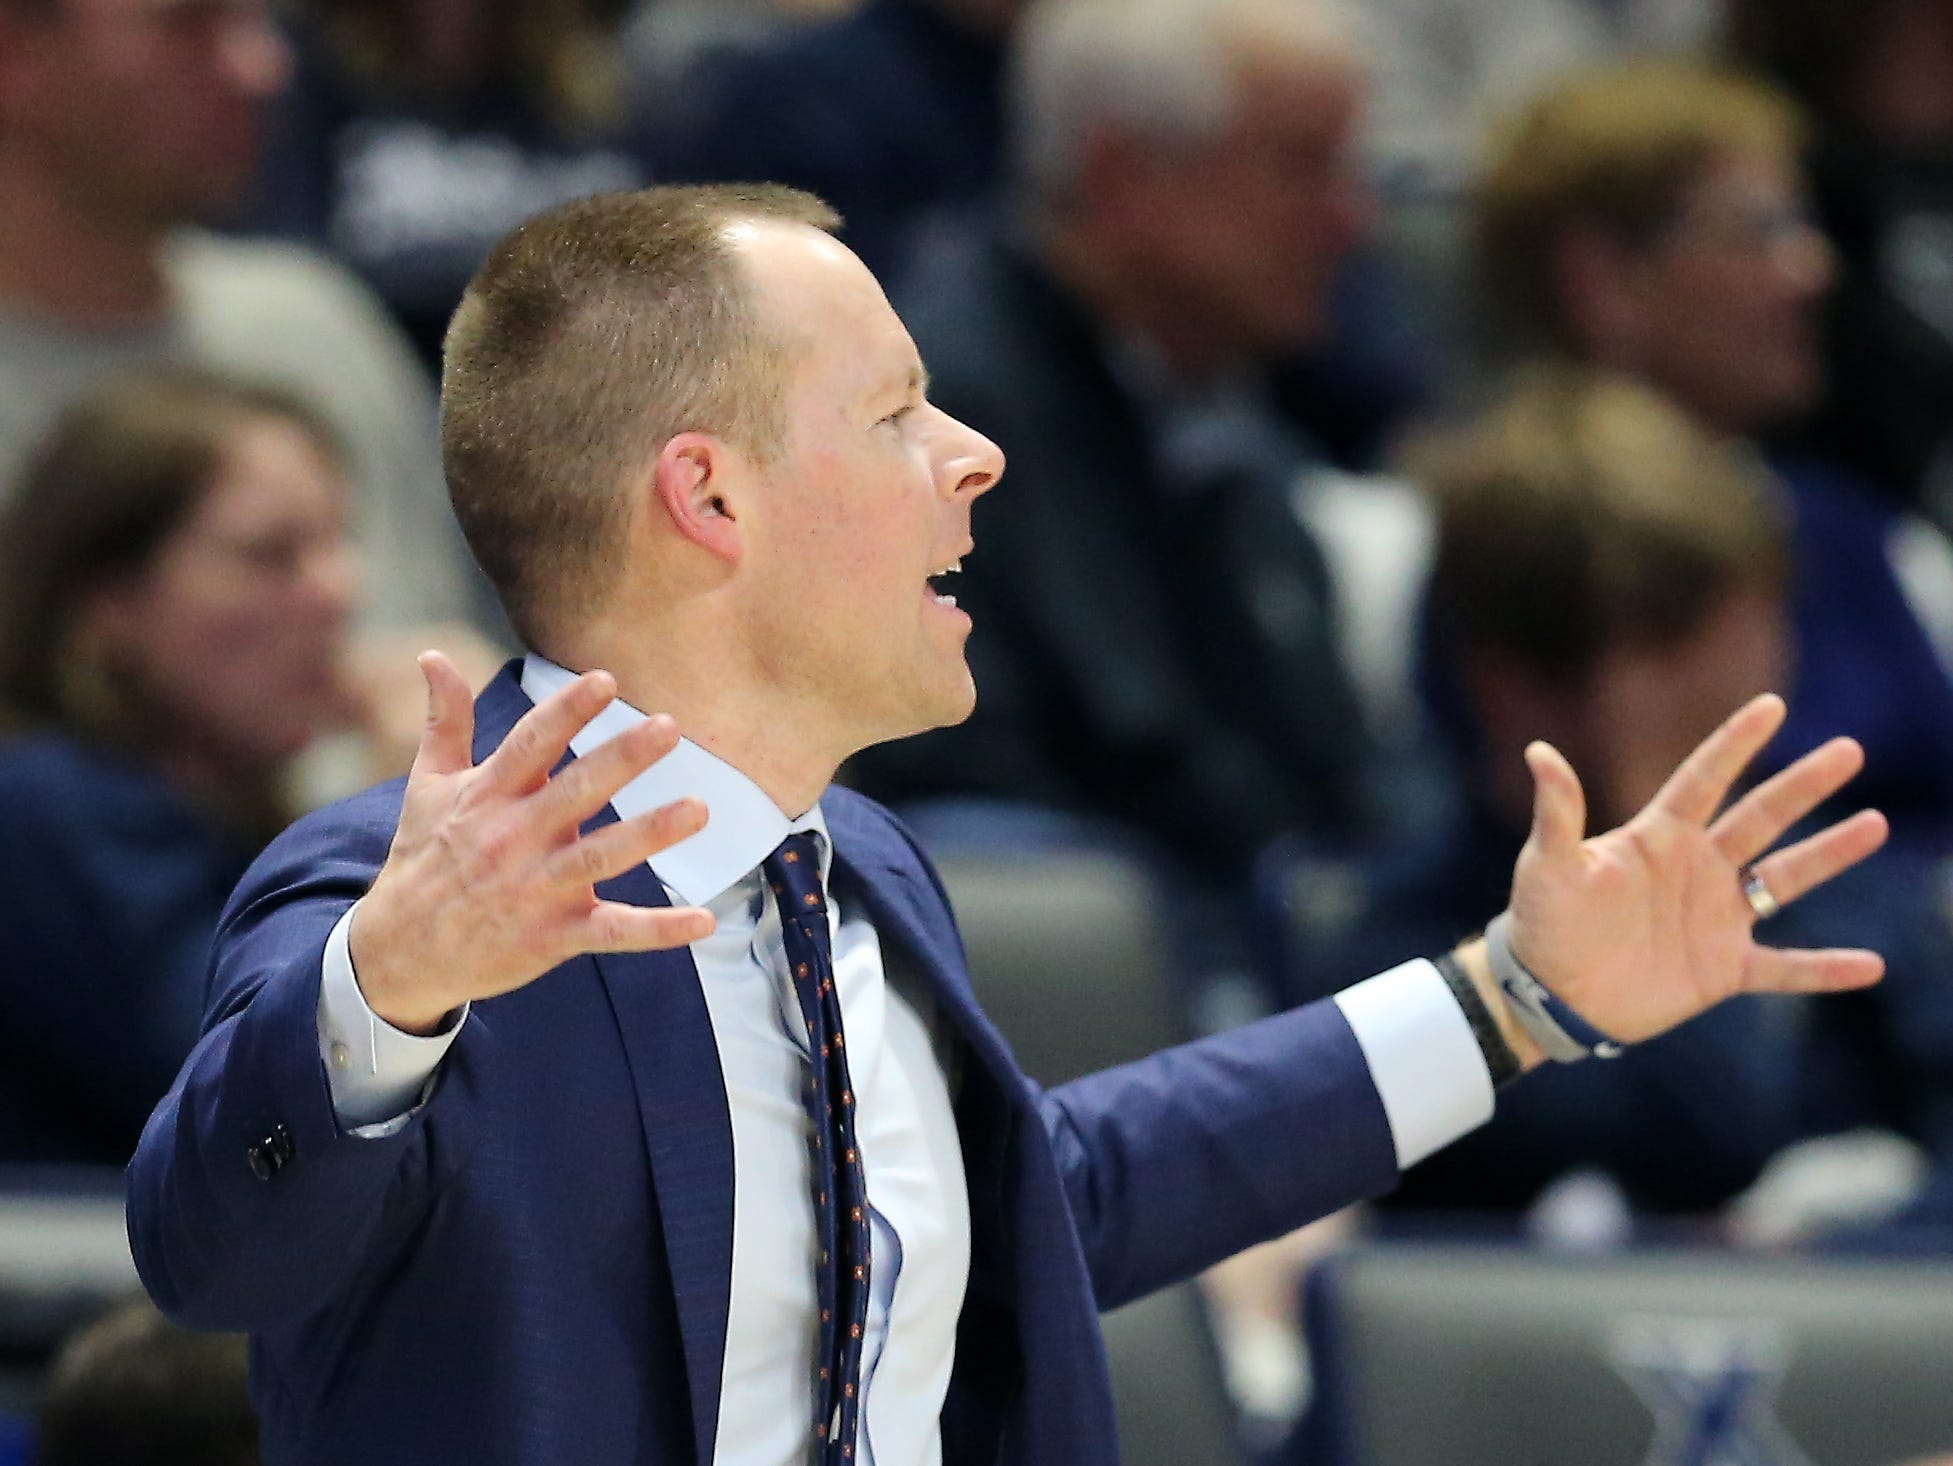 Xavier Musketeers head coach Travis Steele instructs the team in the second half of an NCAA college basketball game, Saturday, Dec. 15, 2018, at Cintas Center in Cincinnati, Ohio